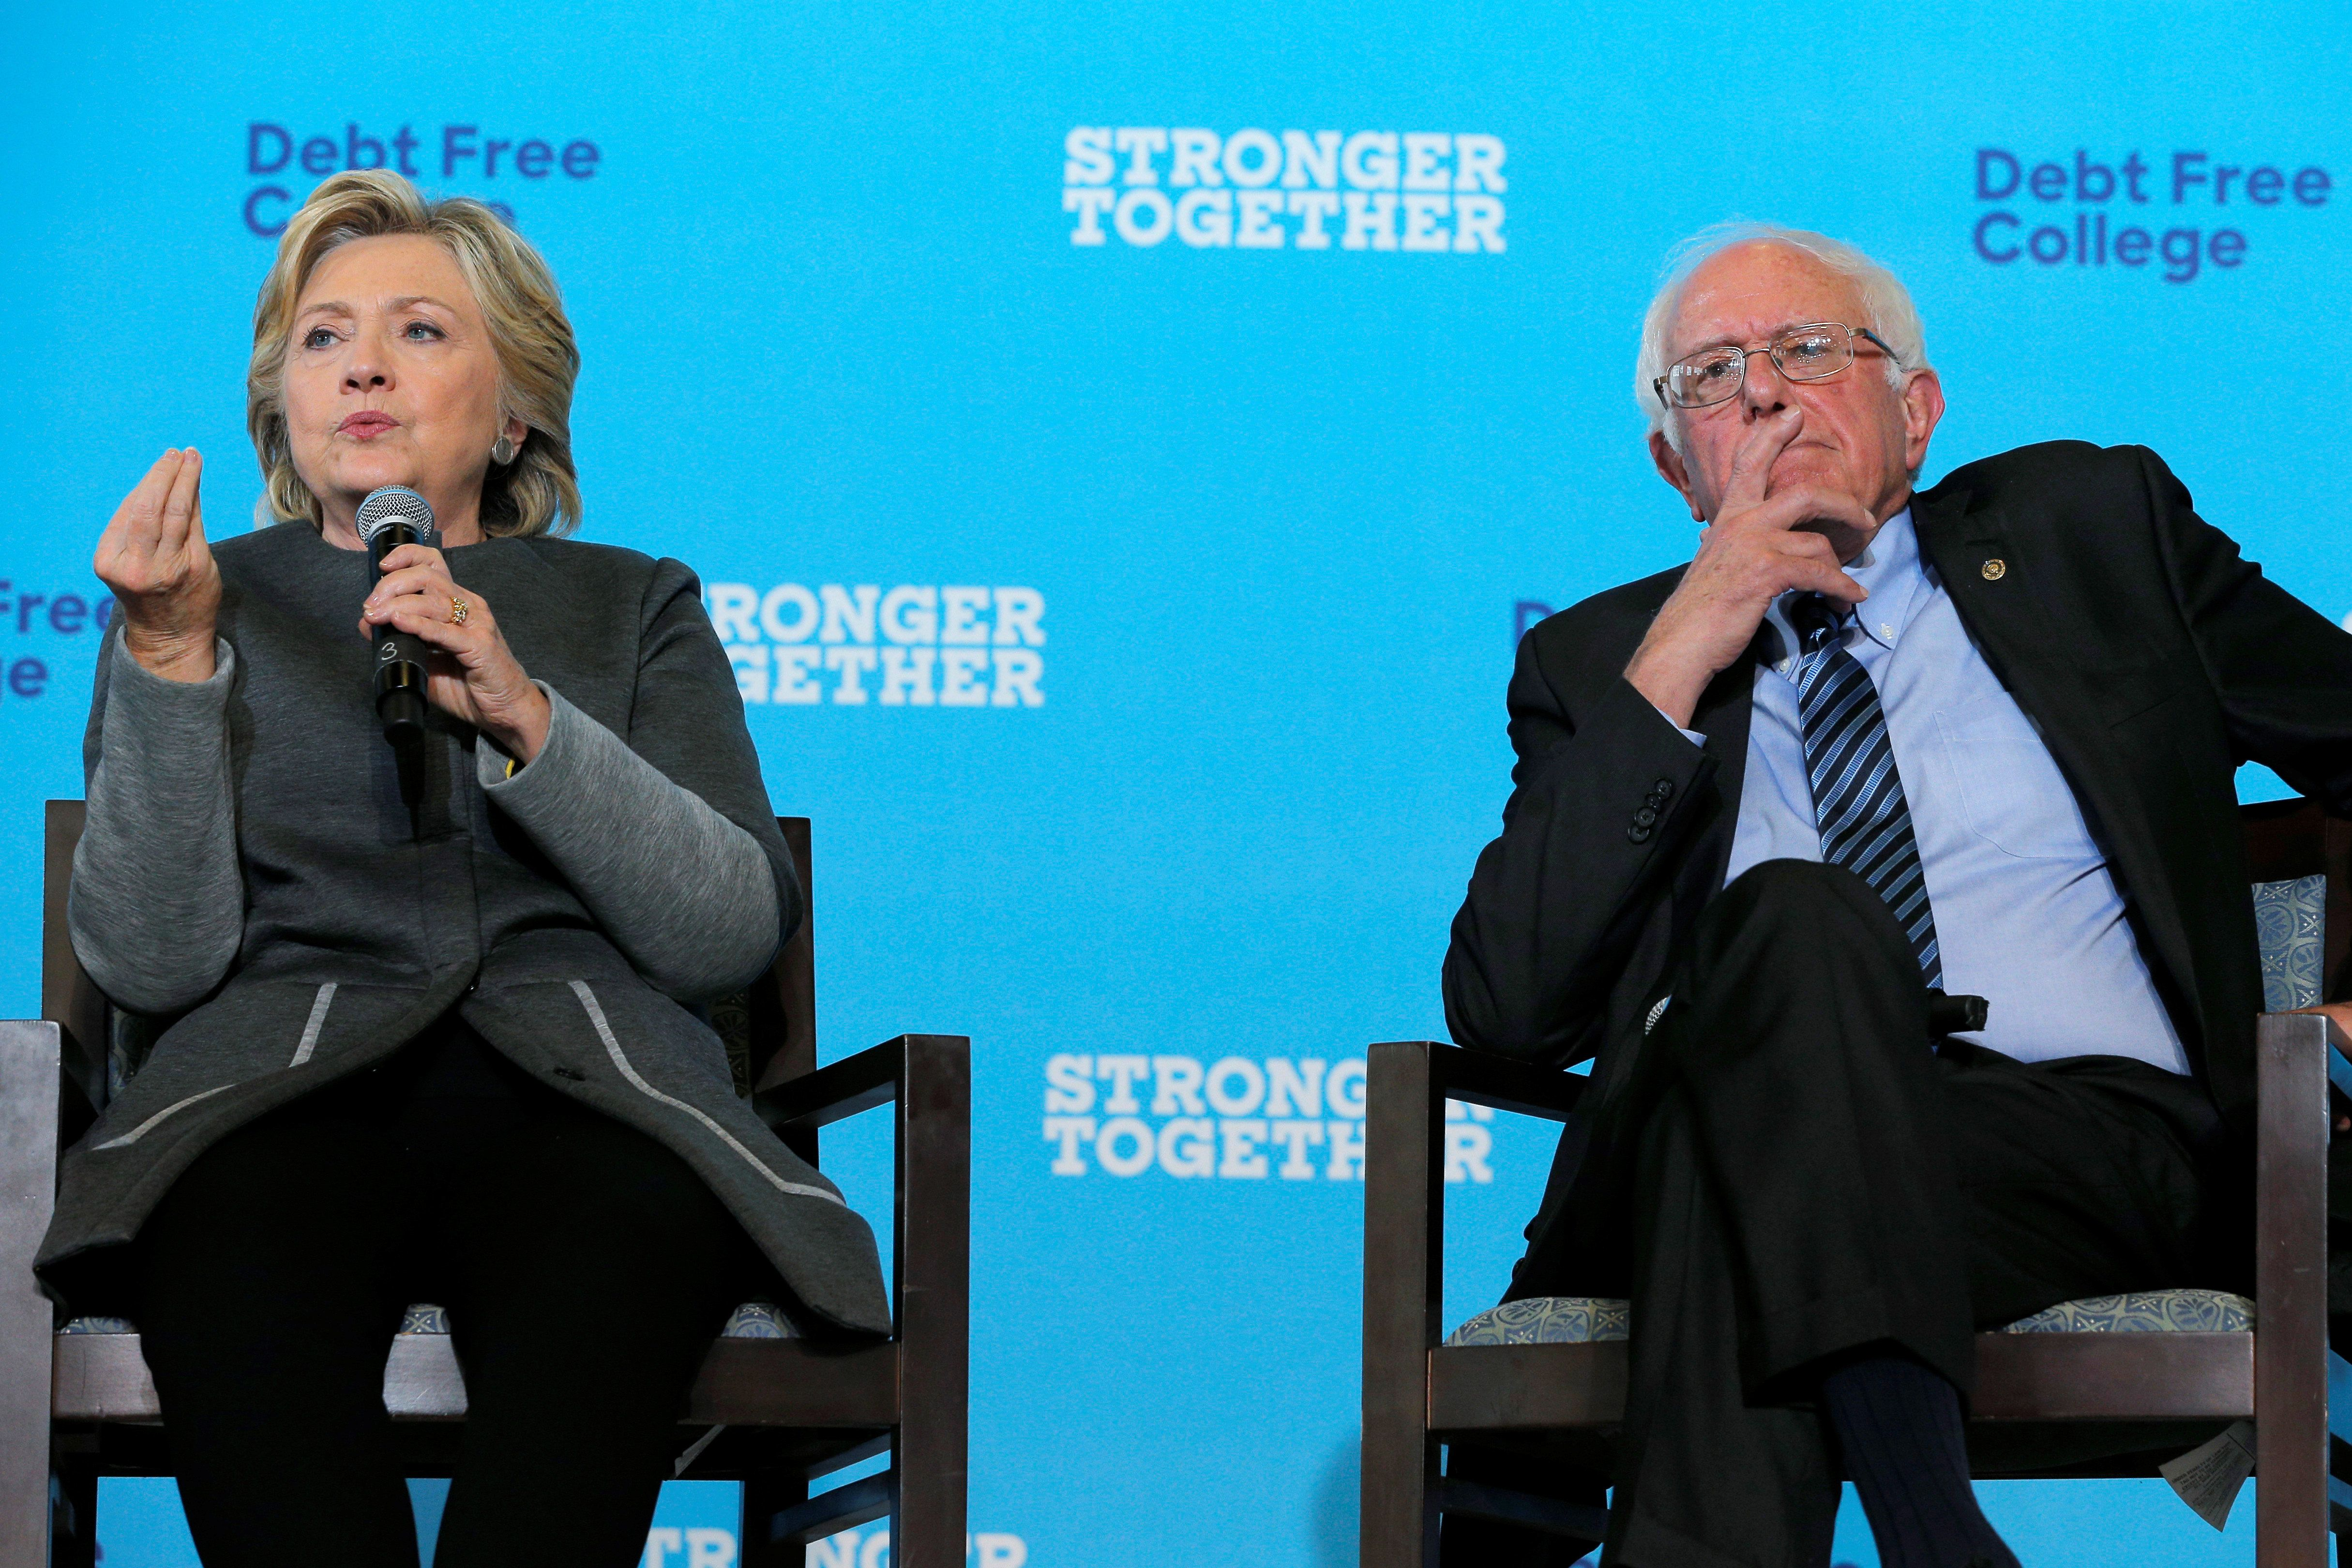 U.S. Senator Bernie Sanders listens as U.S. Democratic presidential nominee Hillary Clinton answers a question about college affordability during a campaign event at the University of New Hampshire in Durham, New Hampshire, United States September 28, 2016.  REUTERS/Brian Snyder